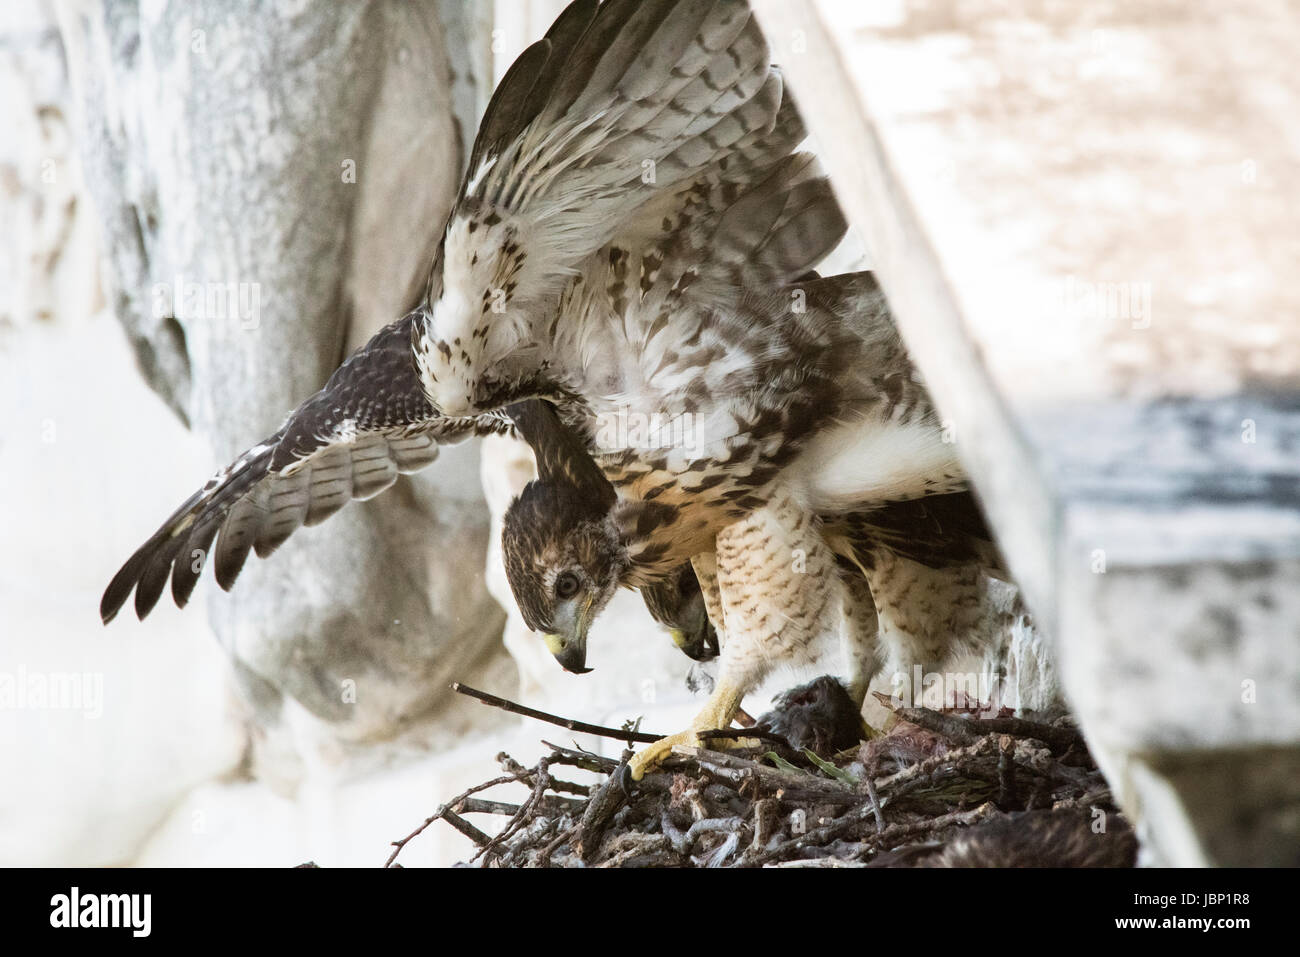 A red-tailed hawk nests atop the U.S. Department of Agriculture Whitten Building June 8, 2017 in Washington, DC. - Stock Image